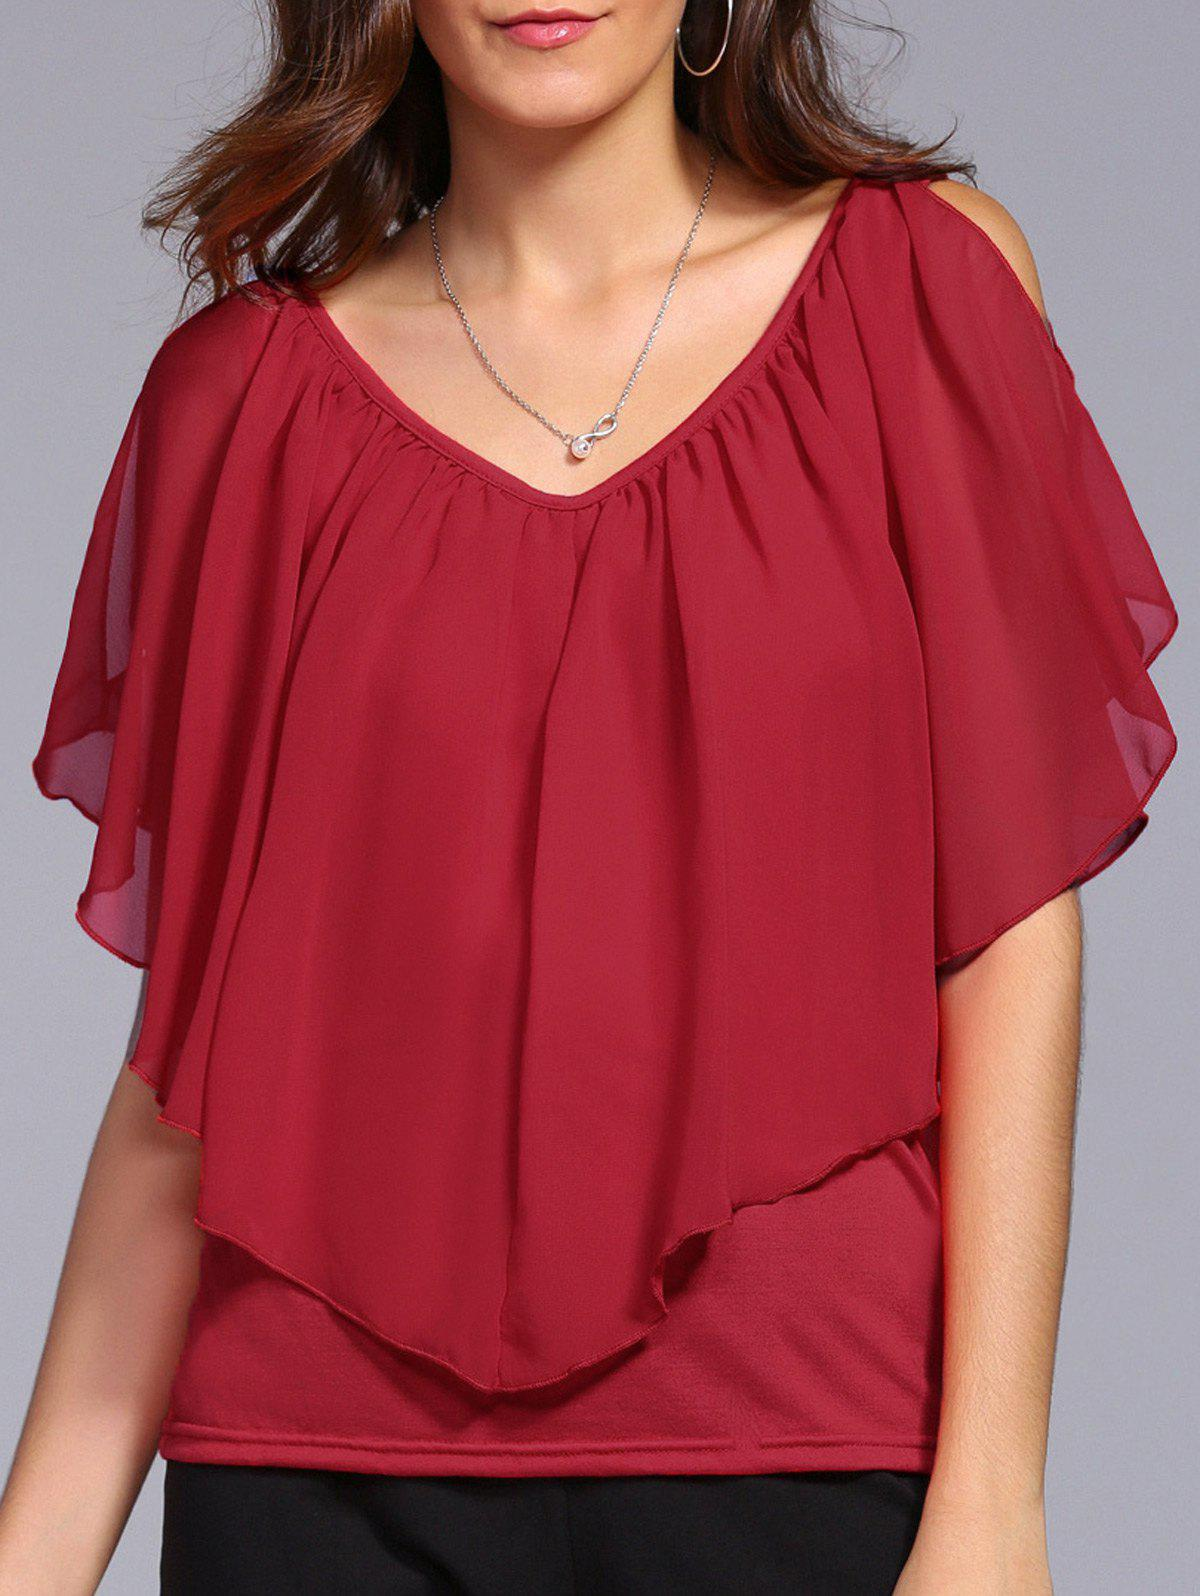 V Neck Cold Shoulder Overlay Chiffon Blouse - RED M